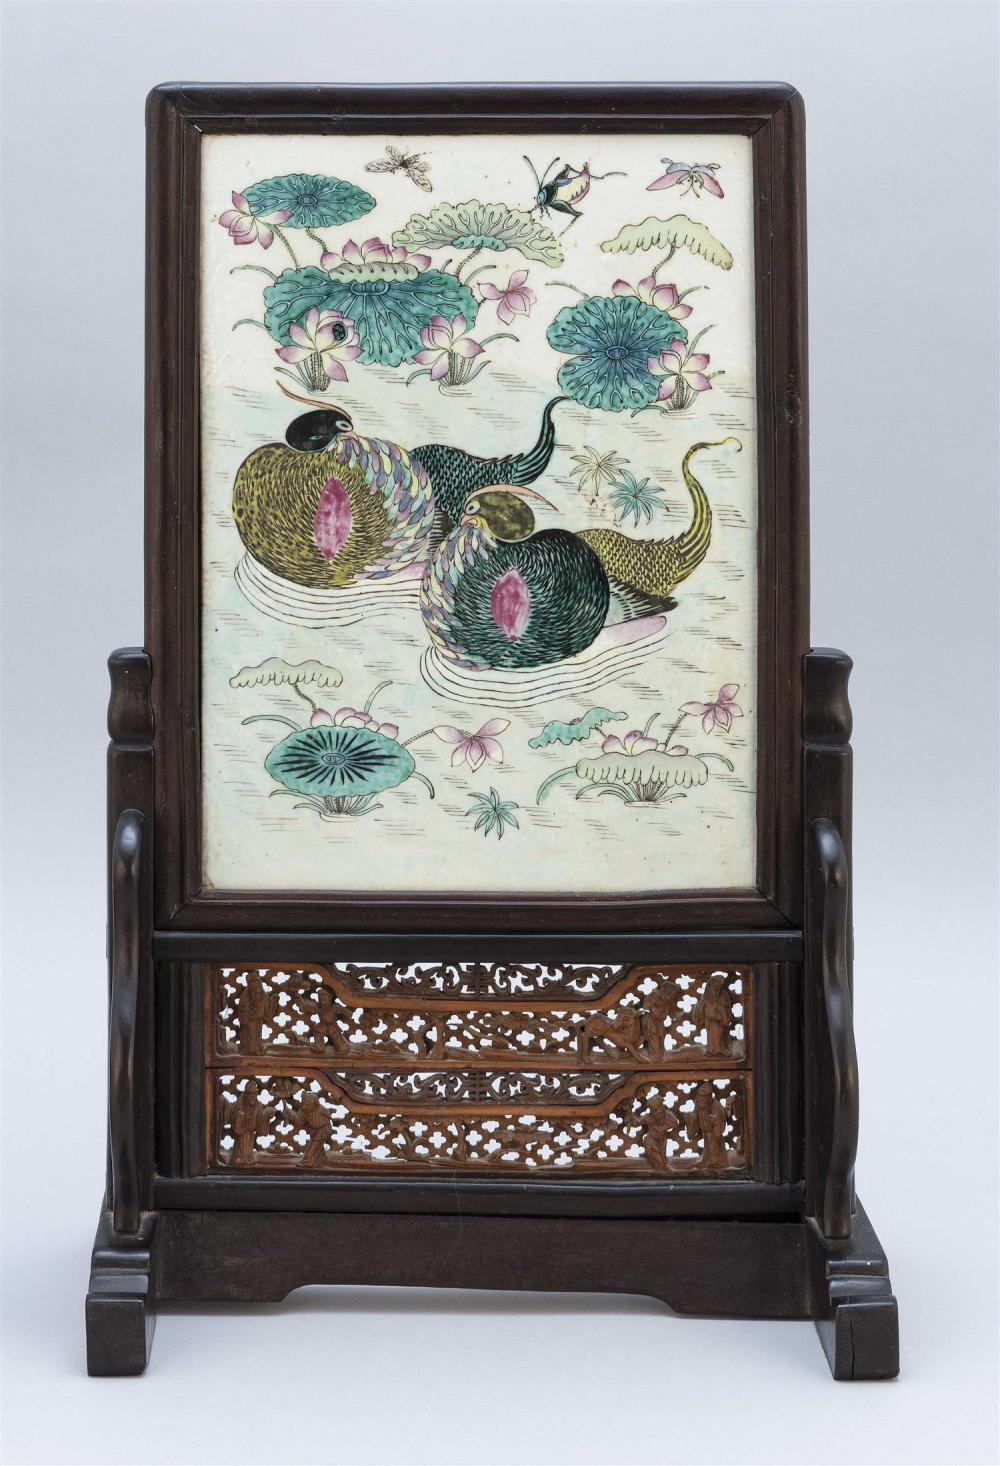 """CHINESE FAMILLE VERTE PORCELAIN TILE PAINTING Depicts two waterfowl swimming amongst water lilies. 13"""" x 9.5"""" sight. Housed in a car..."""